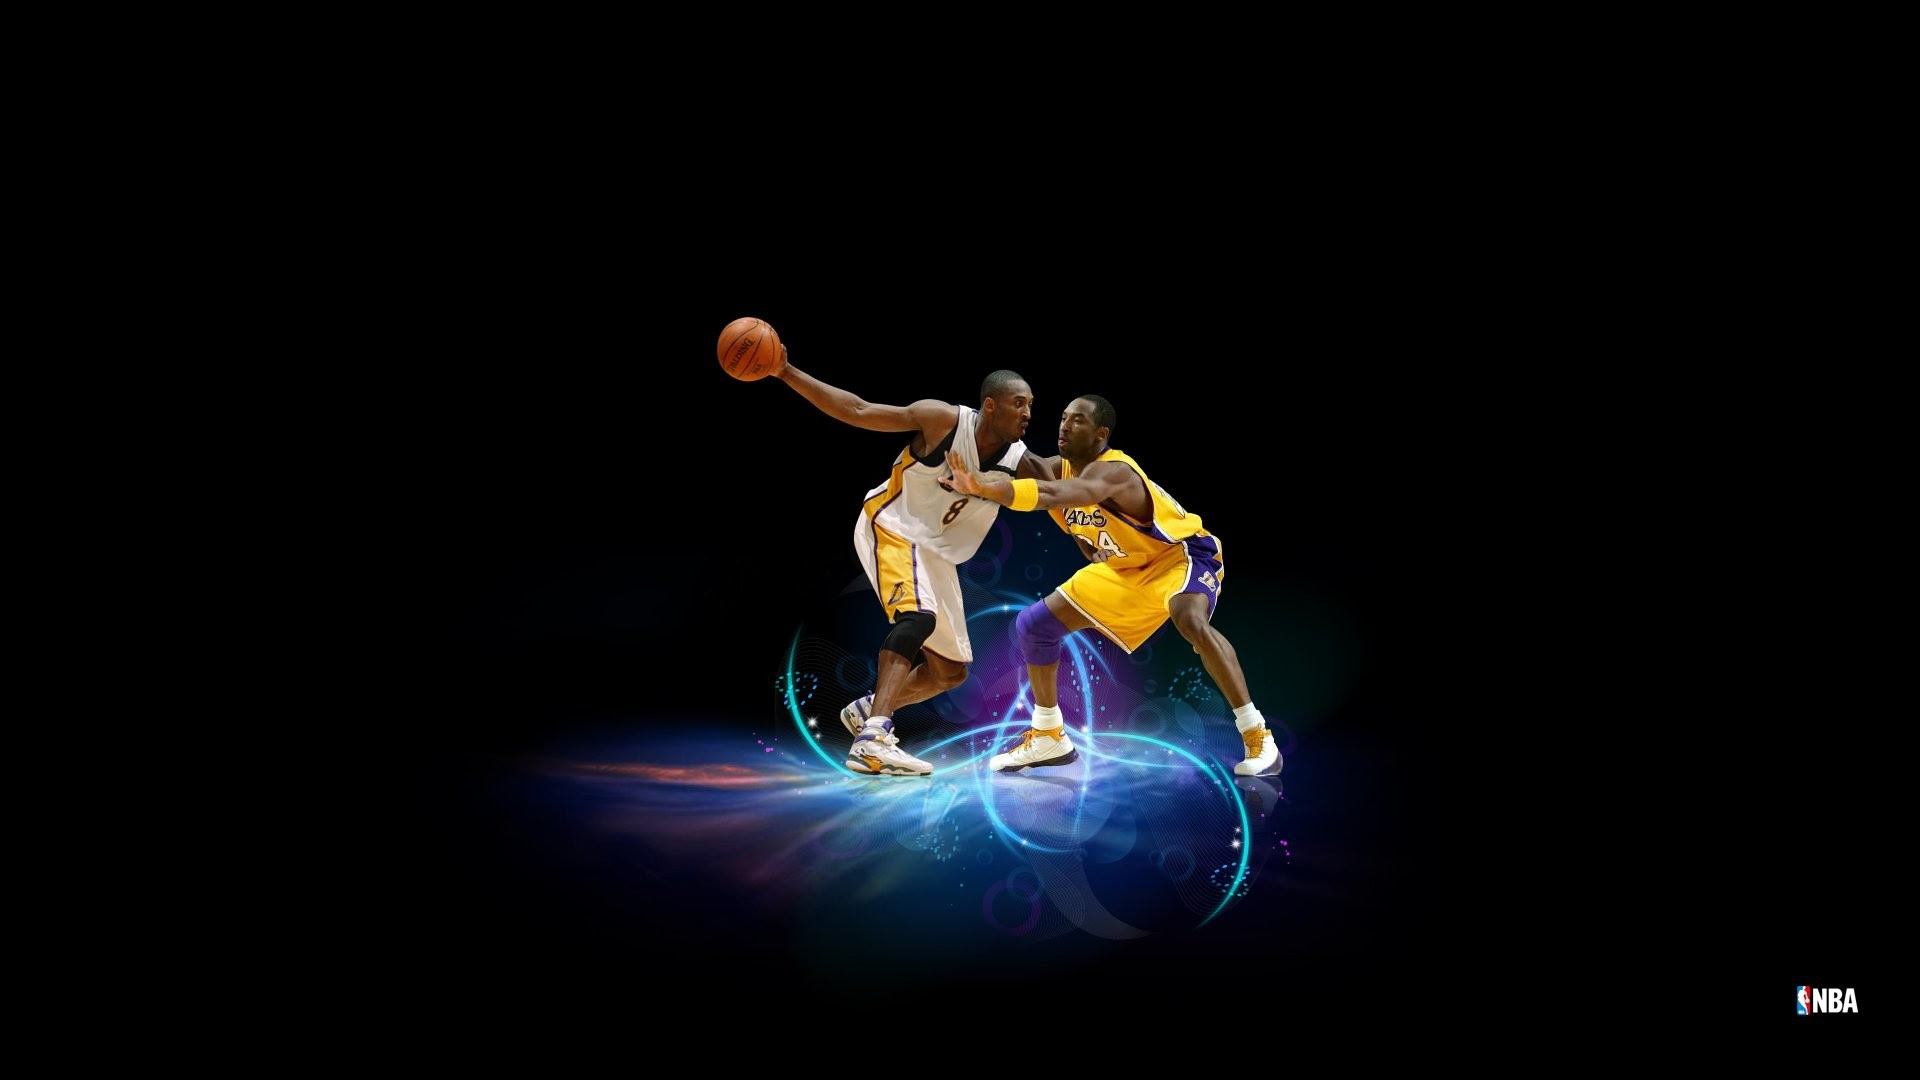 Kobe Wallpapers 2018 (65+ images)